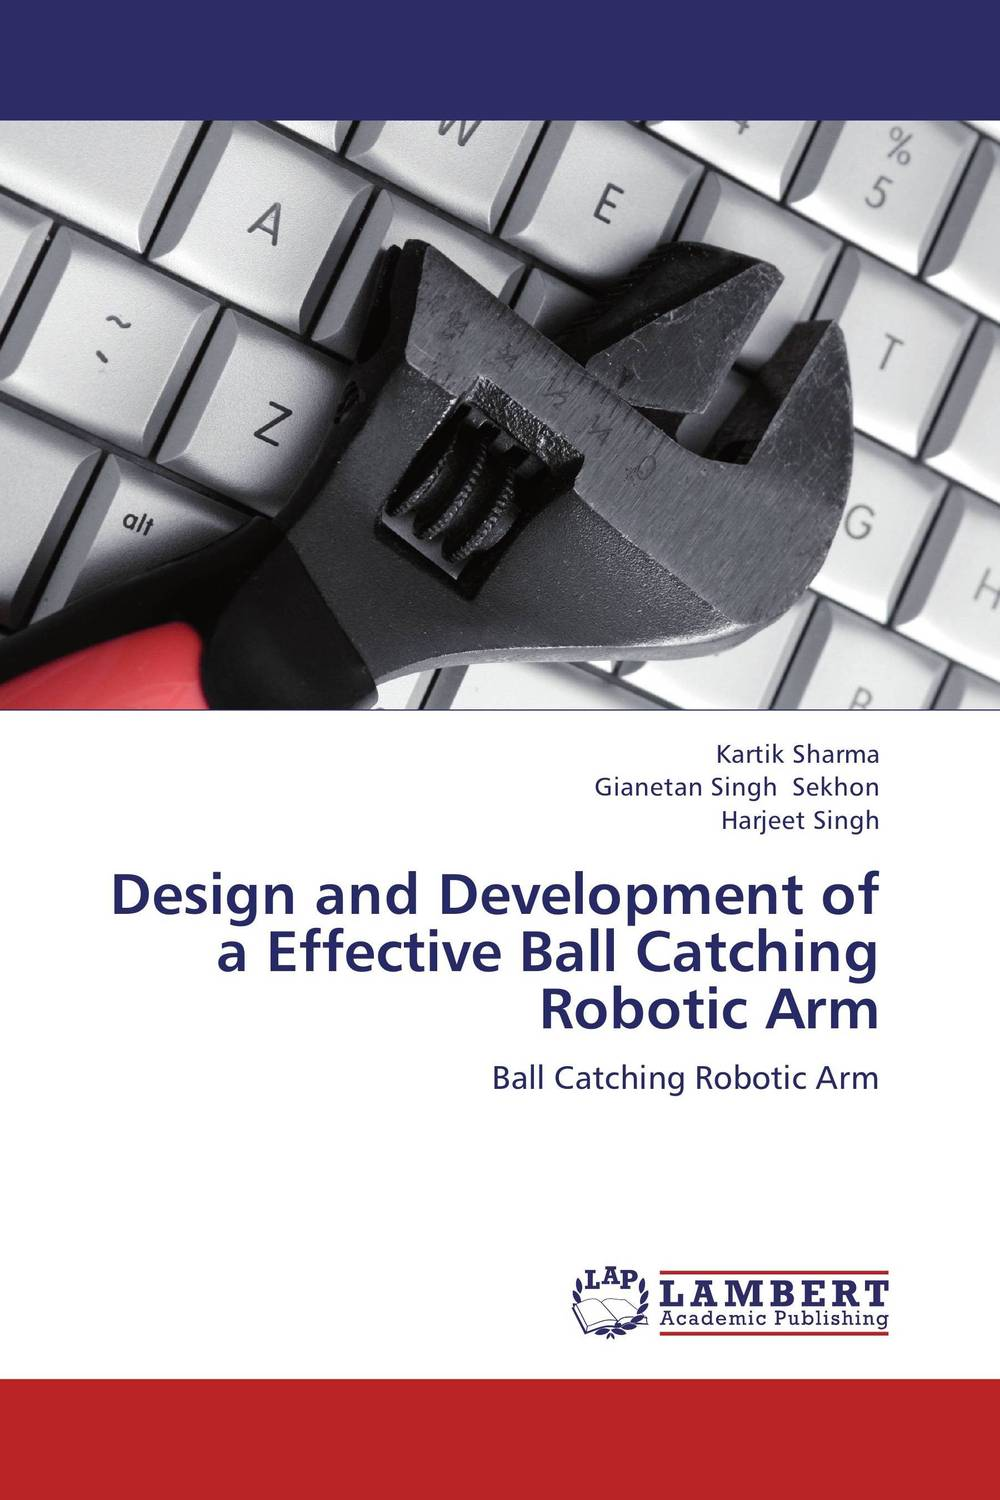 Design and Development of a Effective Ball Catching Robotic Arm jeremy depangher design and implementation of eight legged robotic transporter